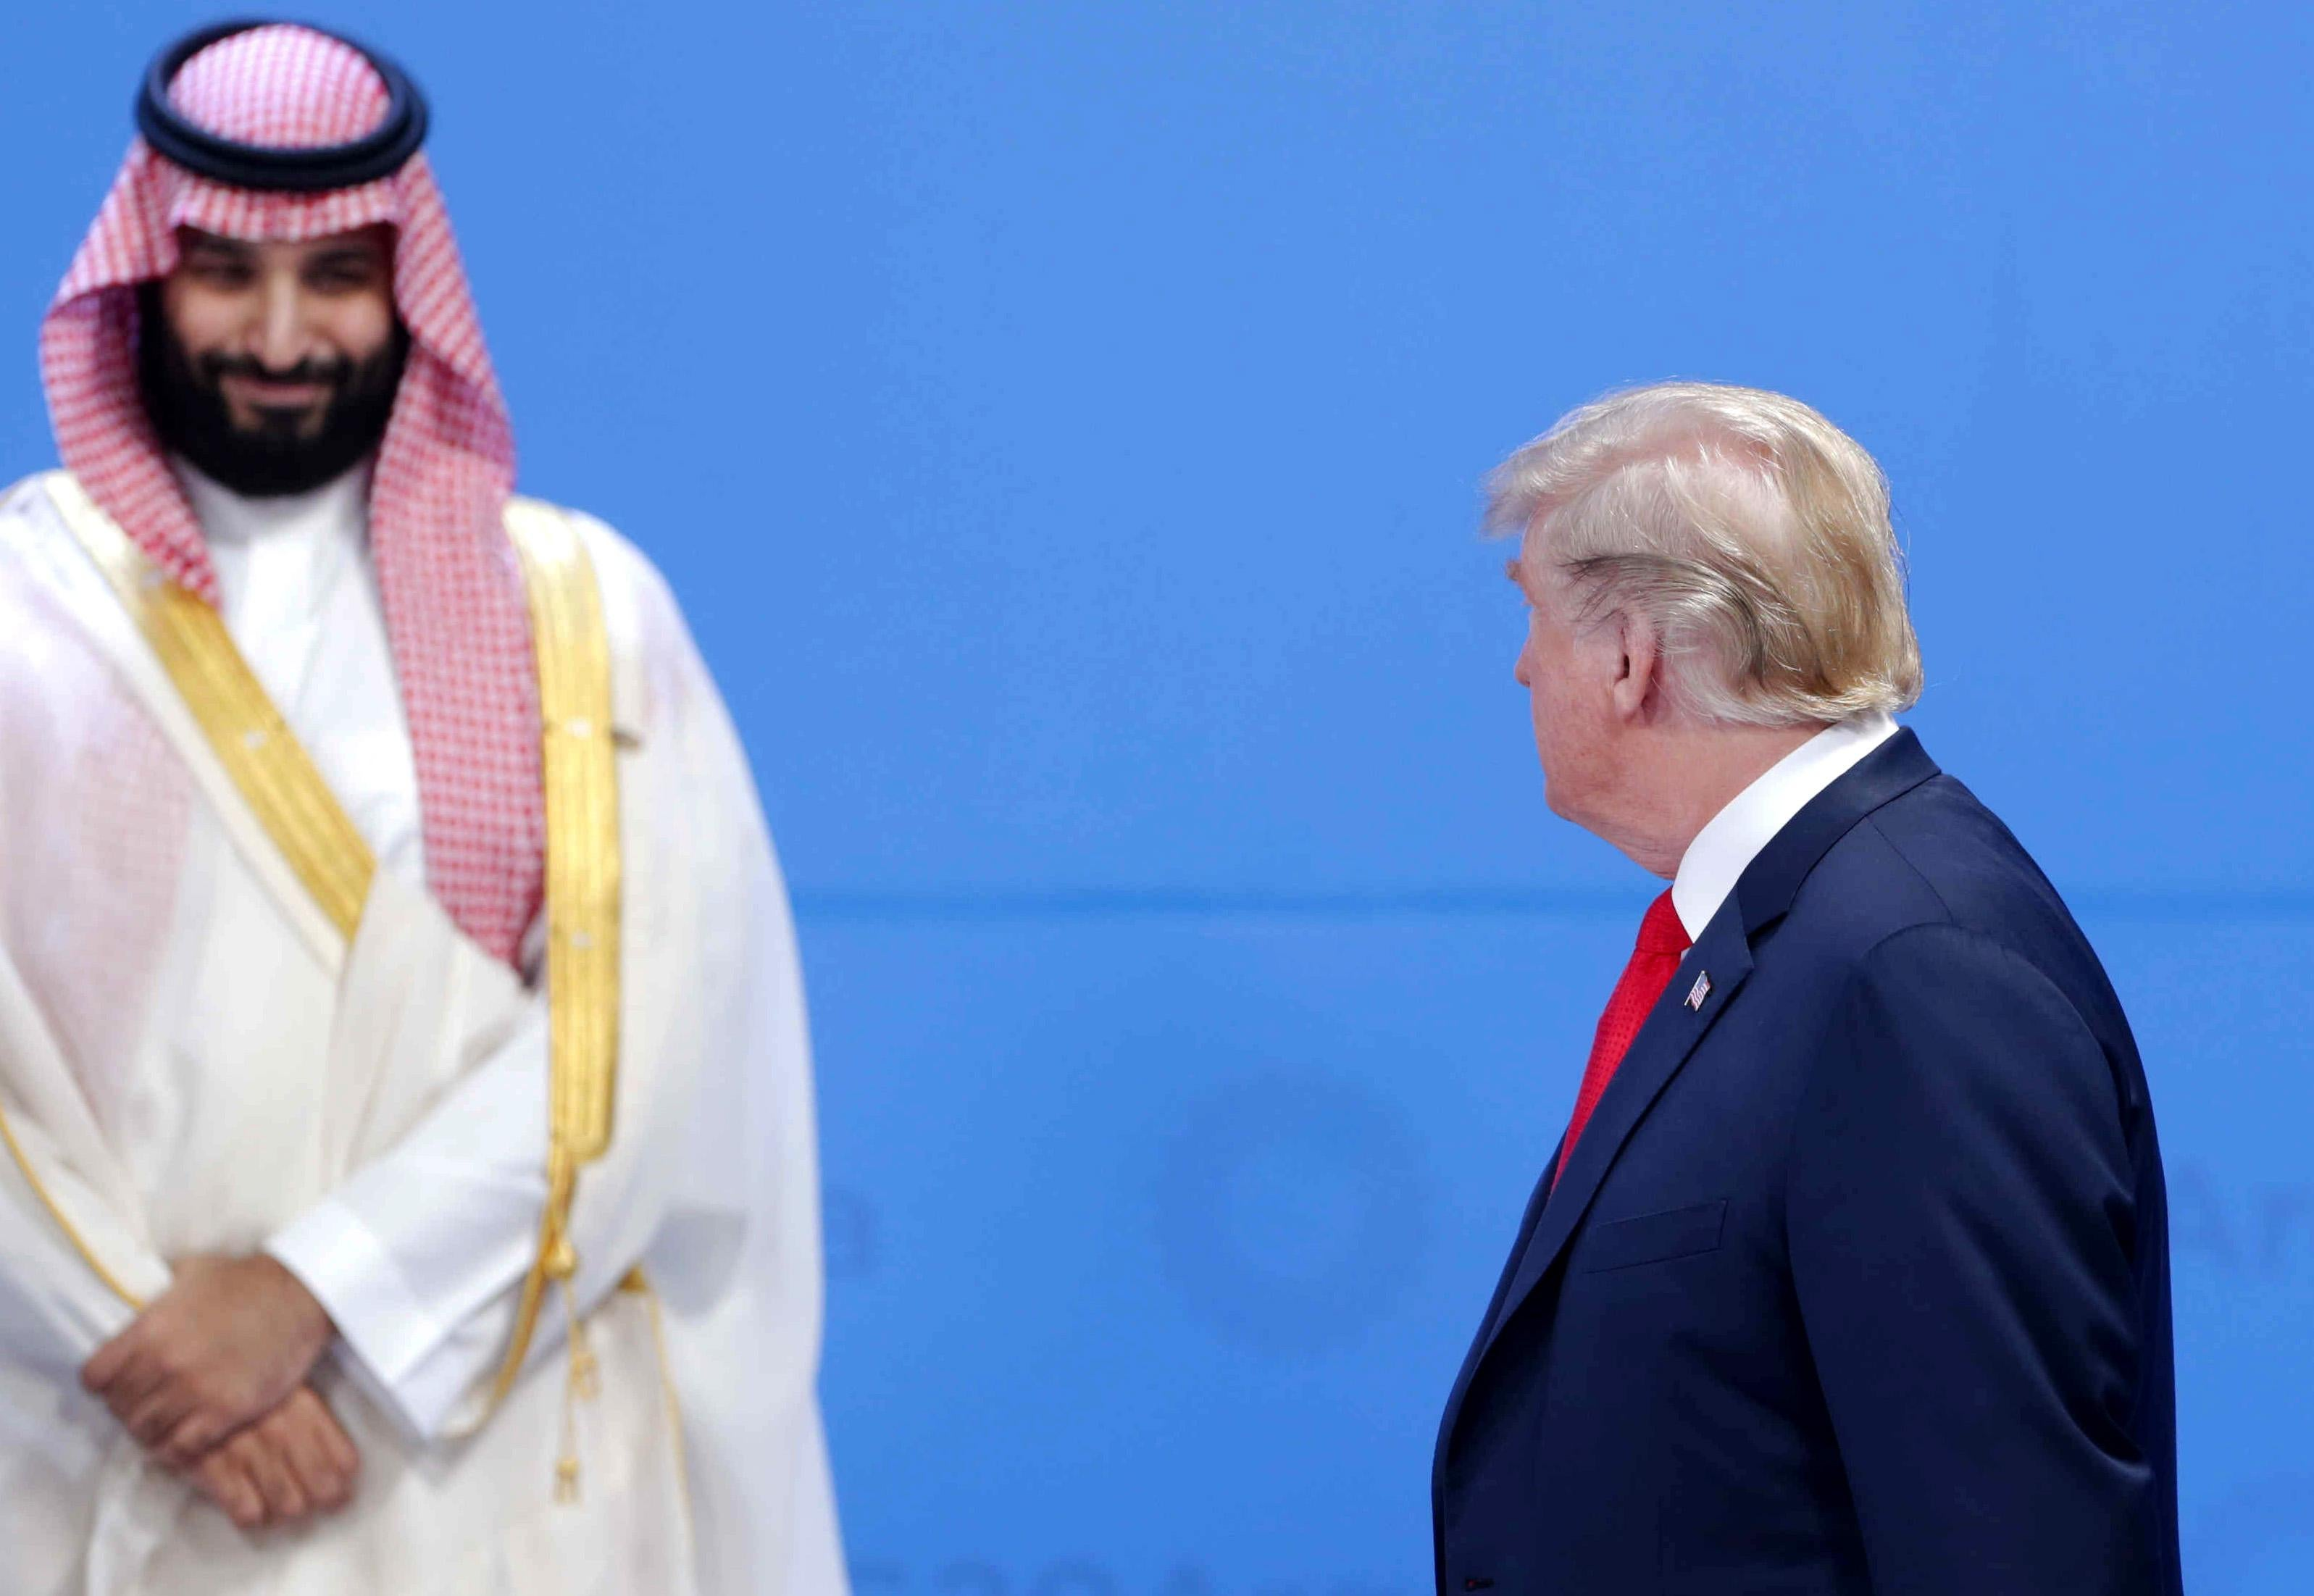 President Trump looks over at Crown Prince of Saudi Arabia Mohammad bin Salman at the G20 on Nov. 30, 2018 in Buenos Aires, Argentina.